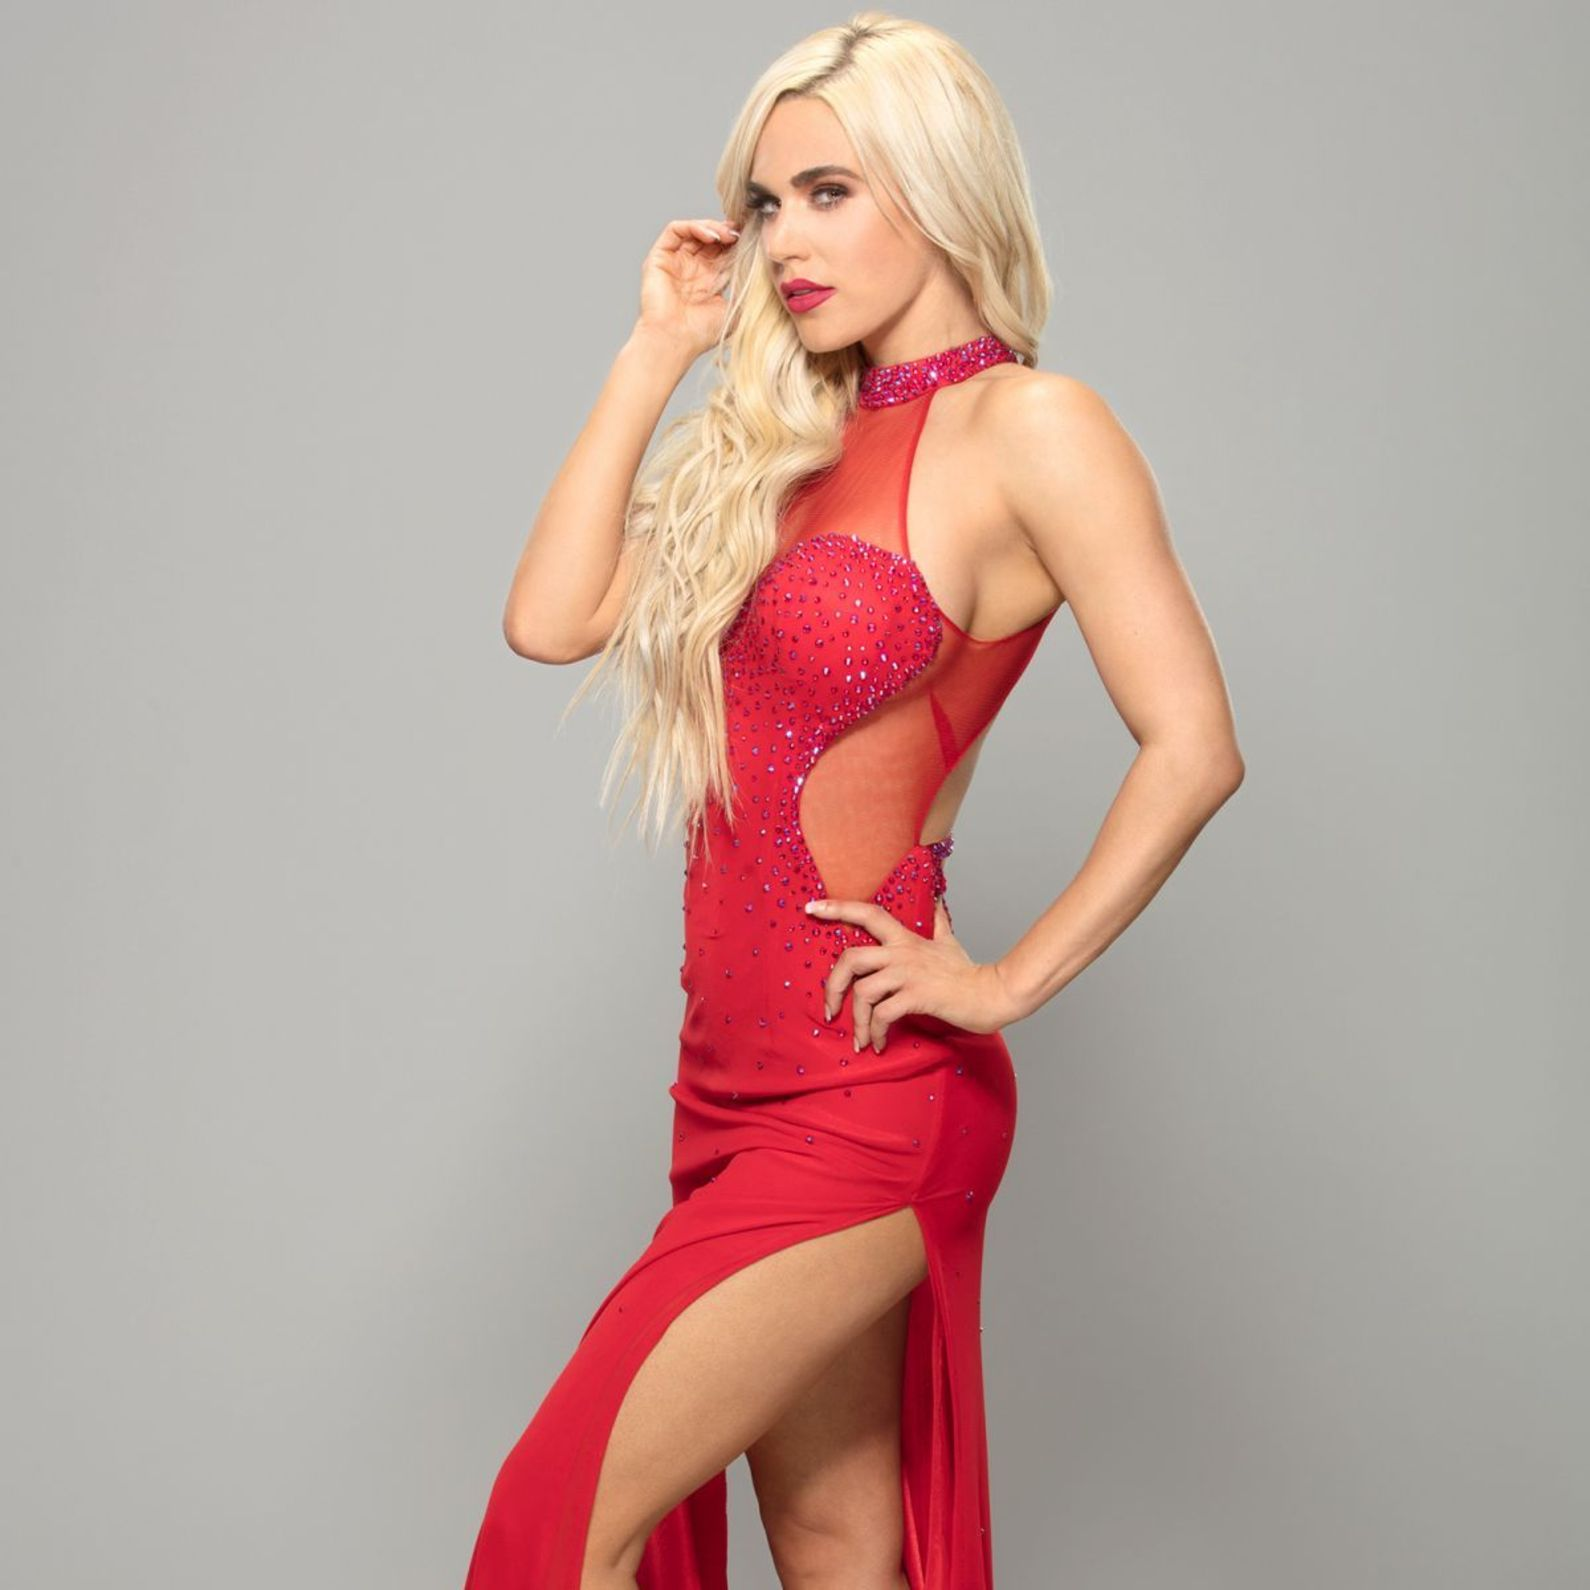 Lana red hot dress